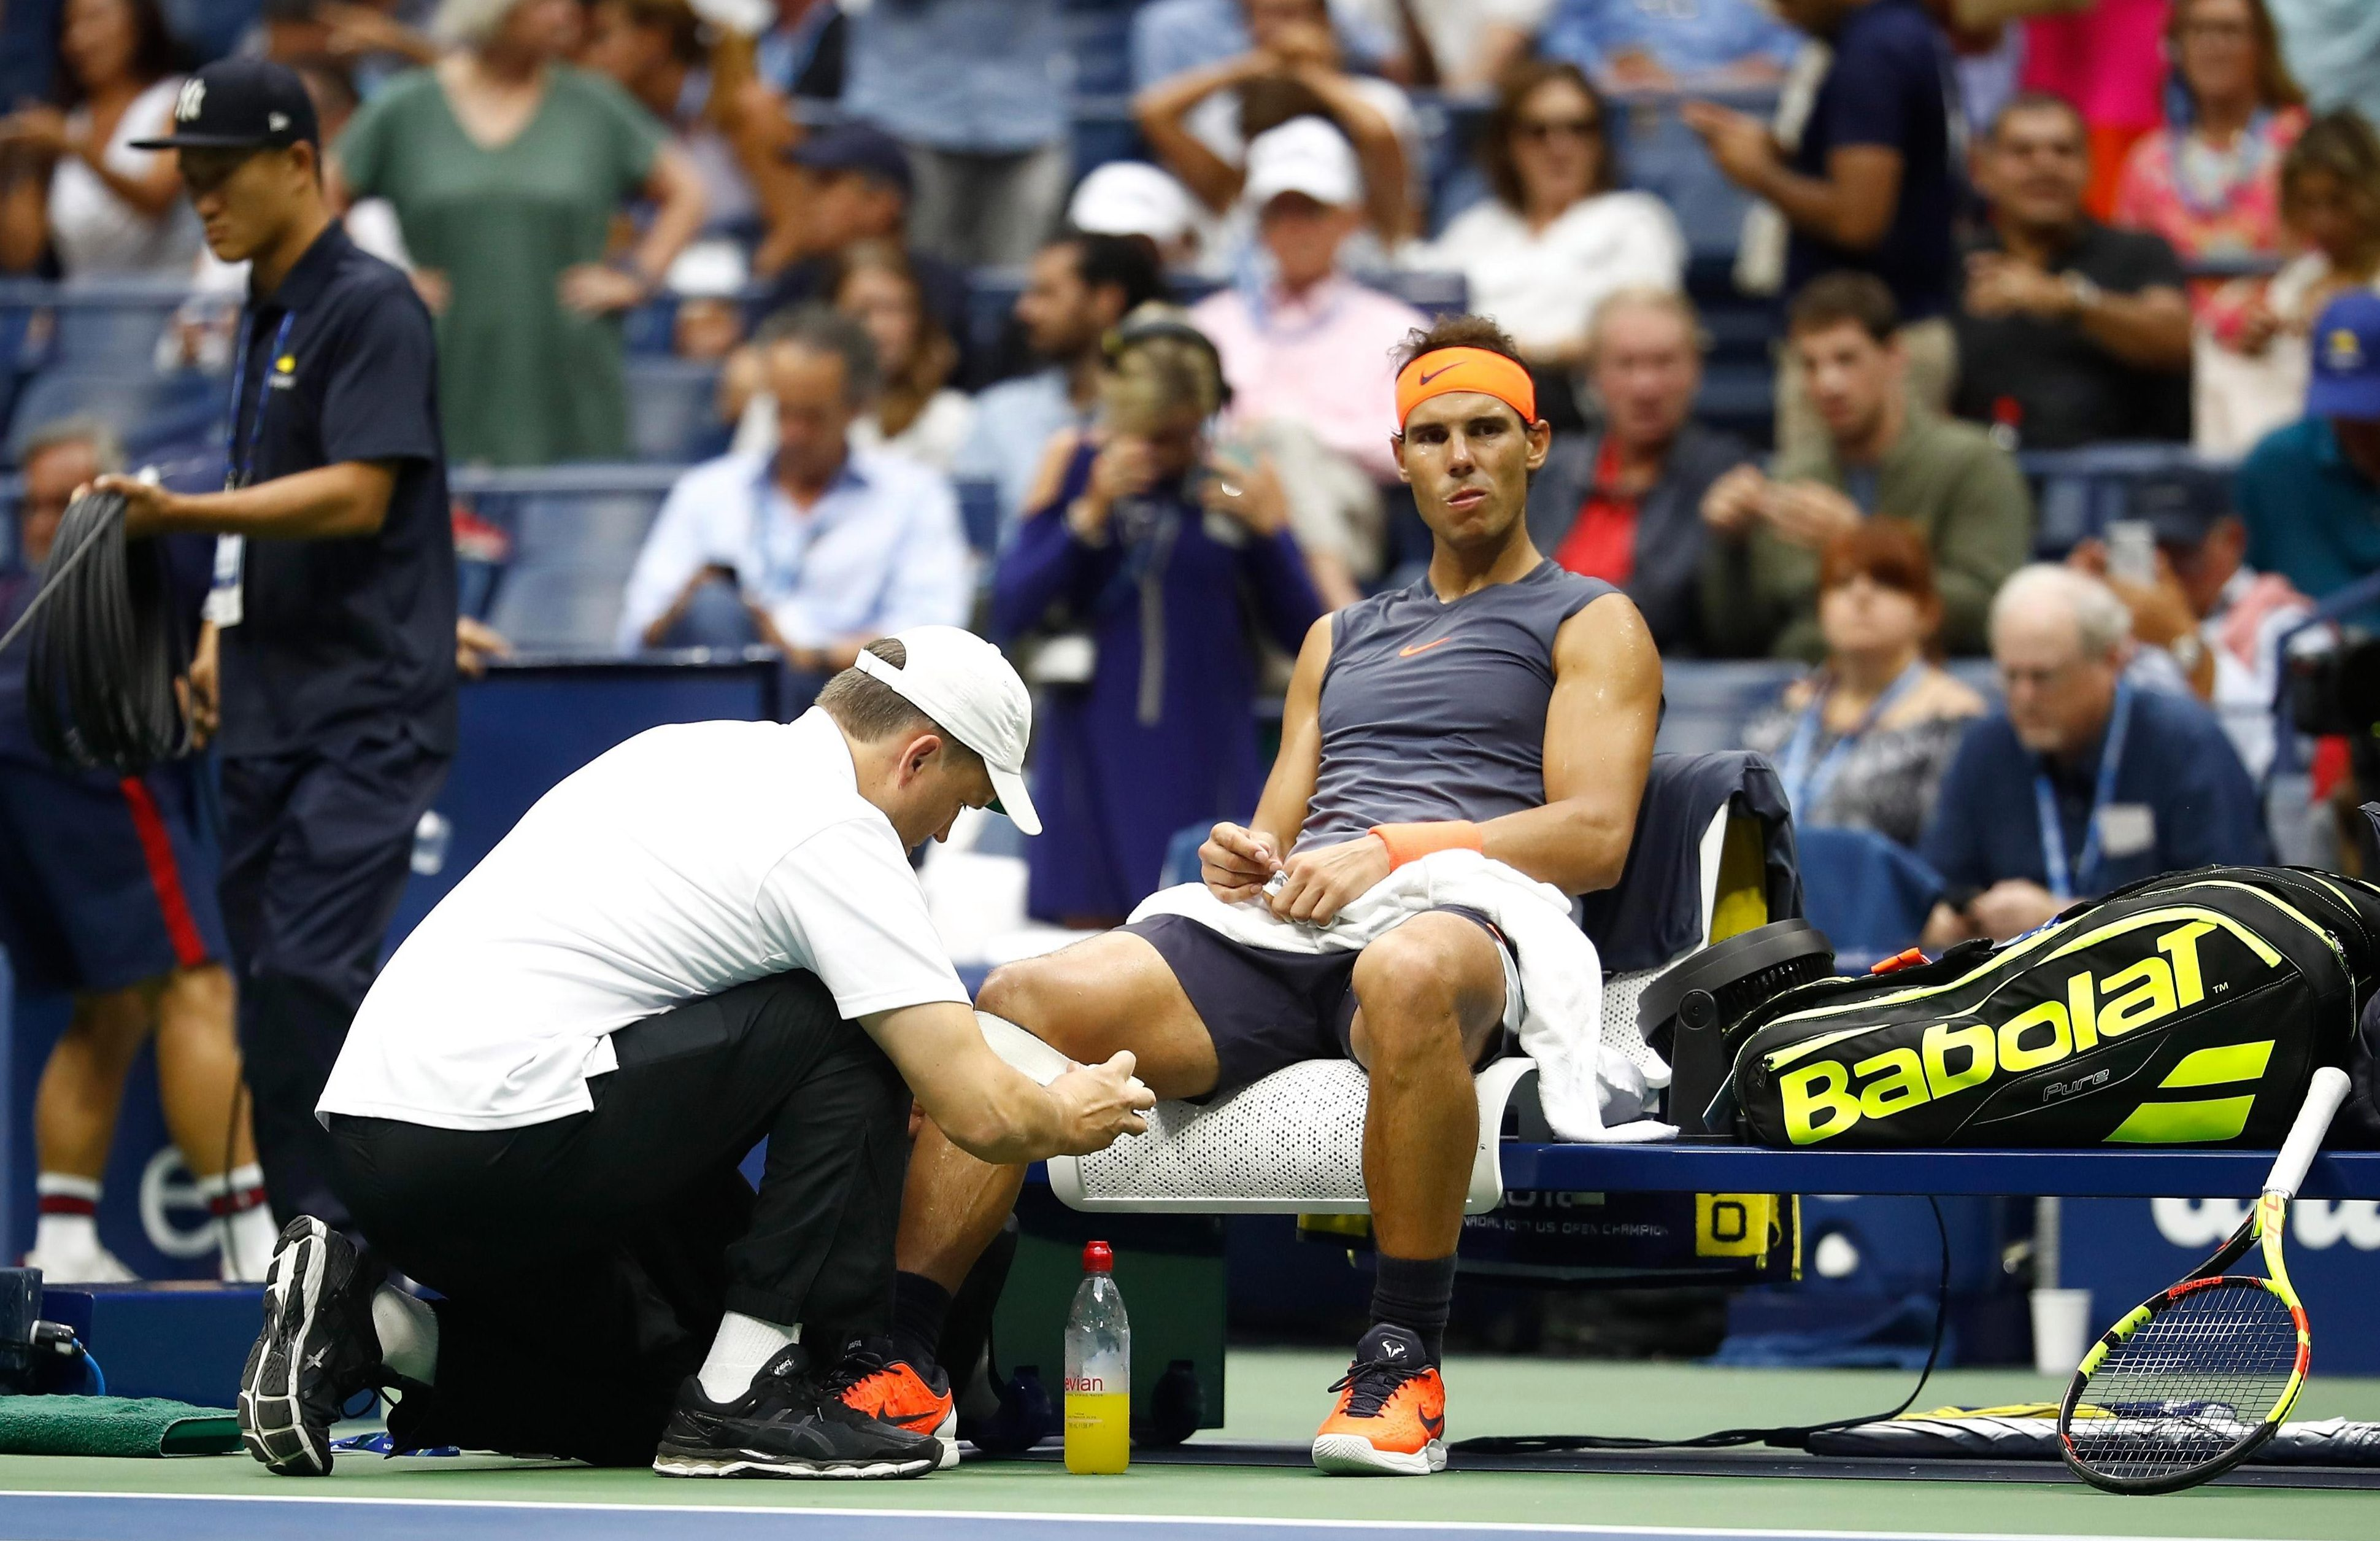 Rafael Nadal had treatment on the court but could not continue